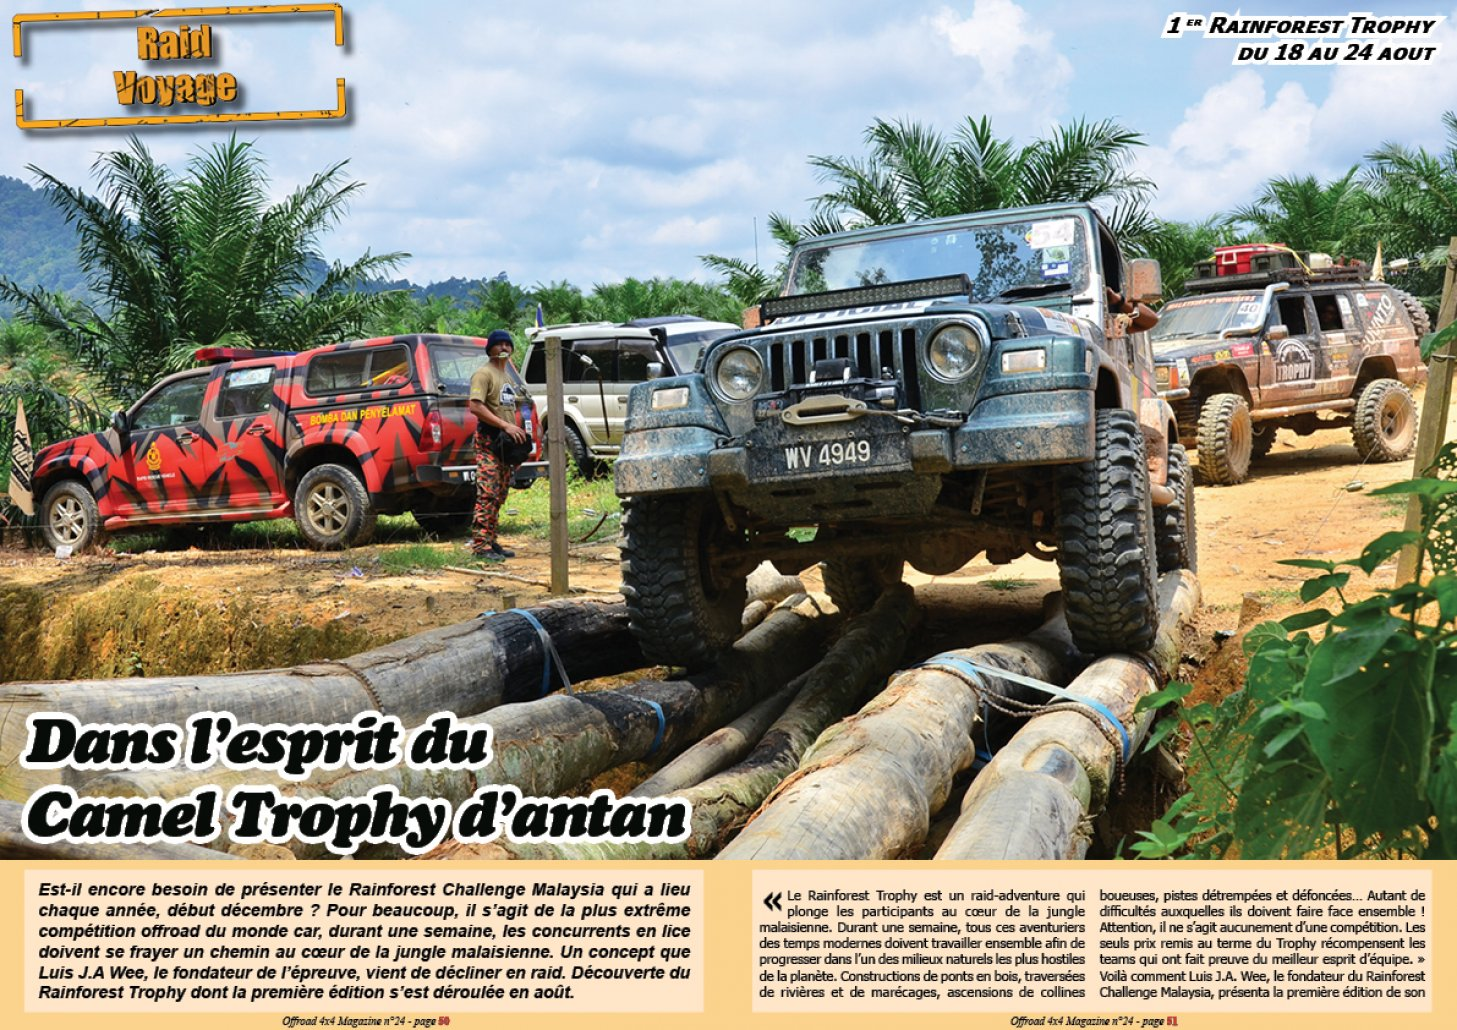 Le Rainforest Trophy 2017